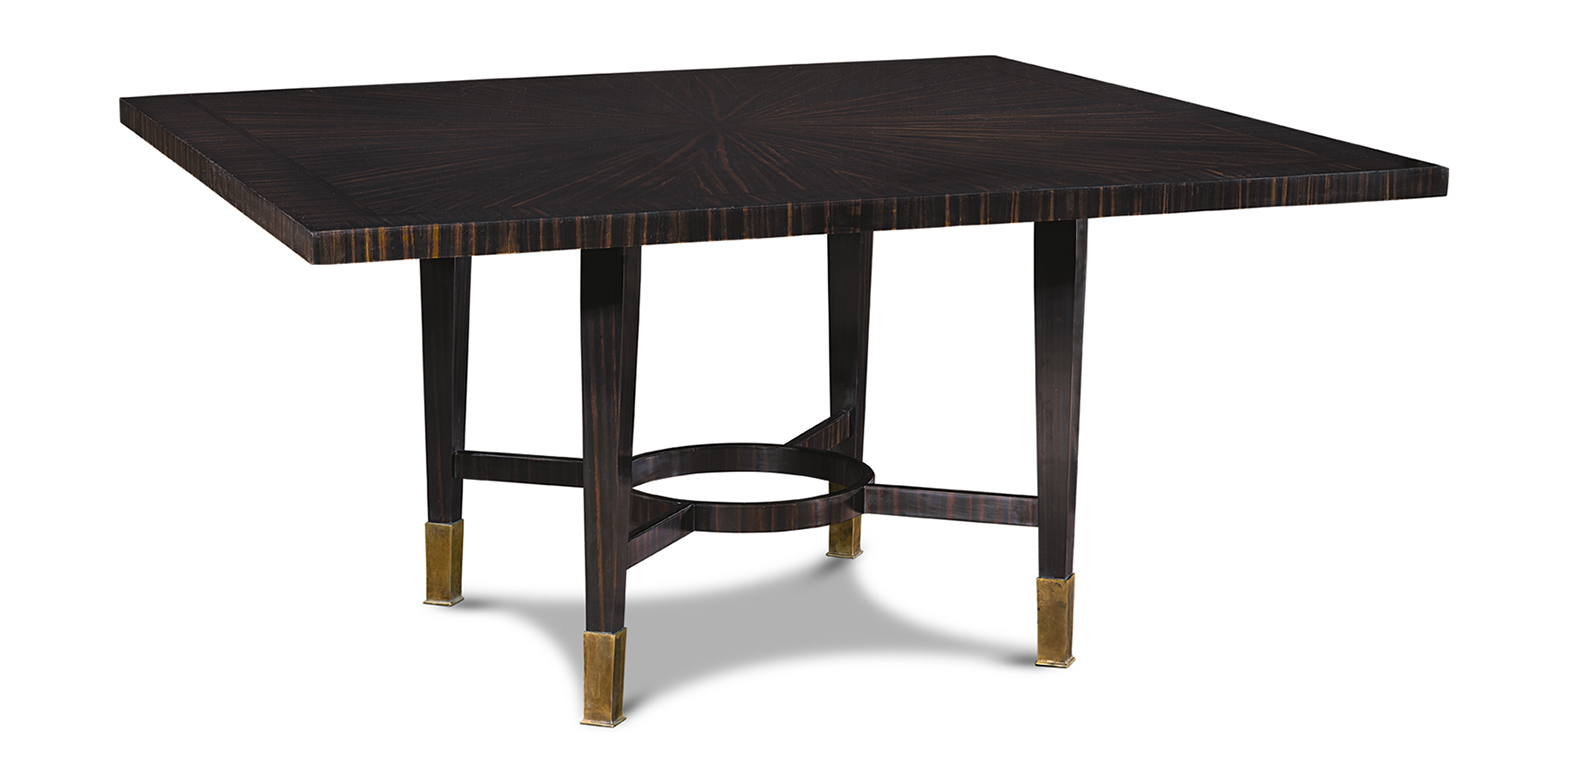 Argueil Square dining table 180